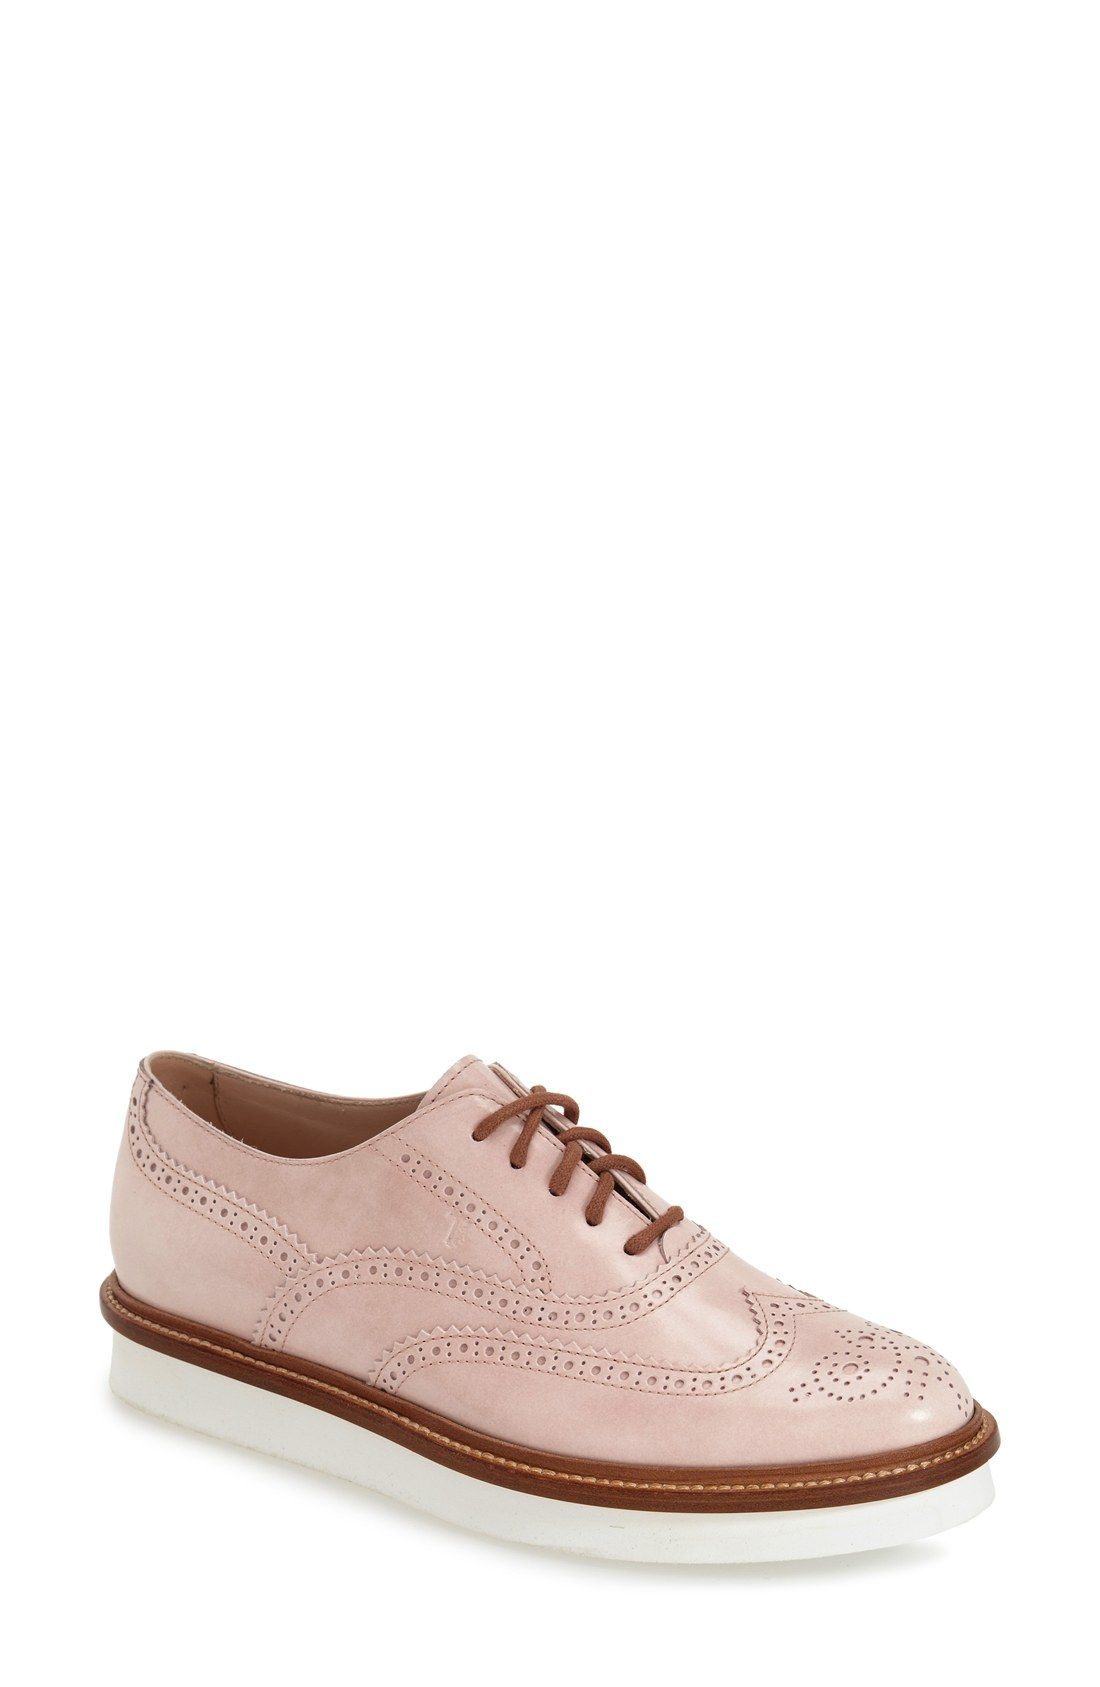 Tod's Platform Wingtip Oxfords shop for for sale outlet brand new unisex enjoy for sale with paypal cheap online WjBPtUlbx